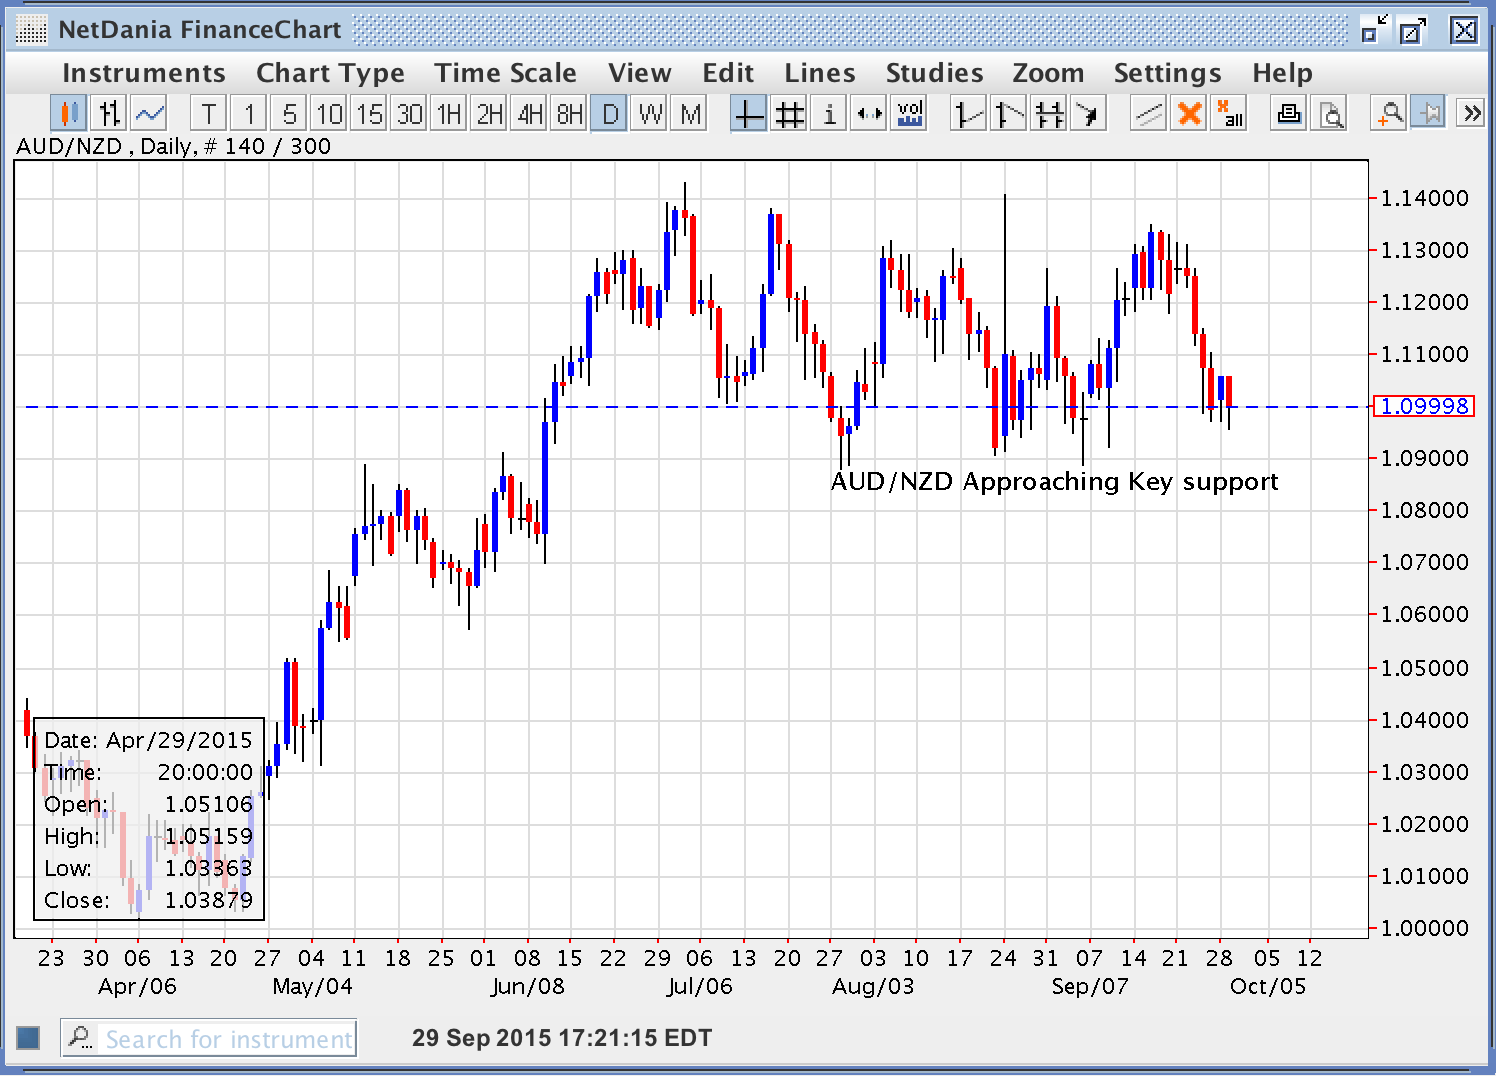 AUD/NZD Approaching Key Support